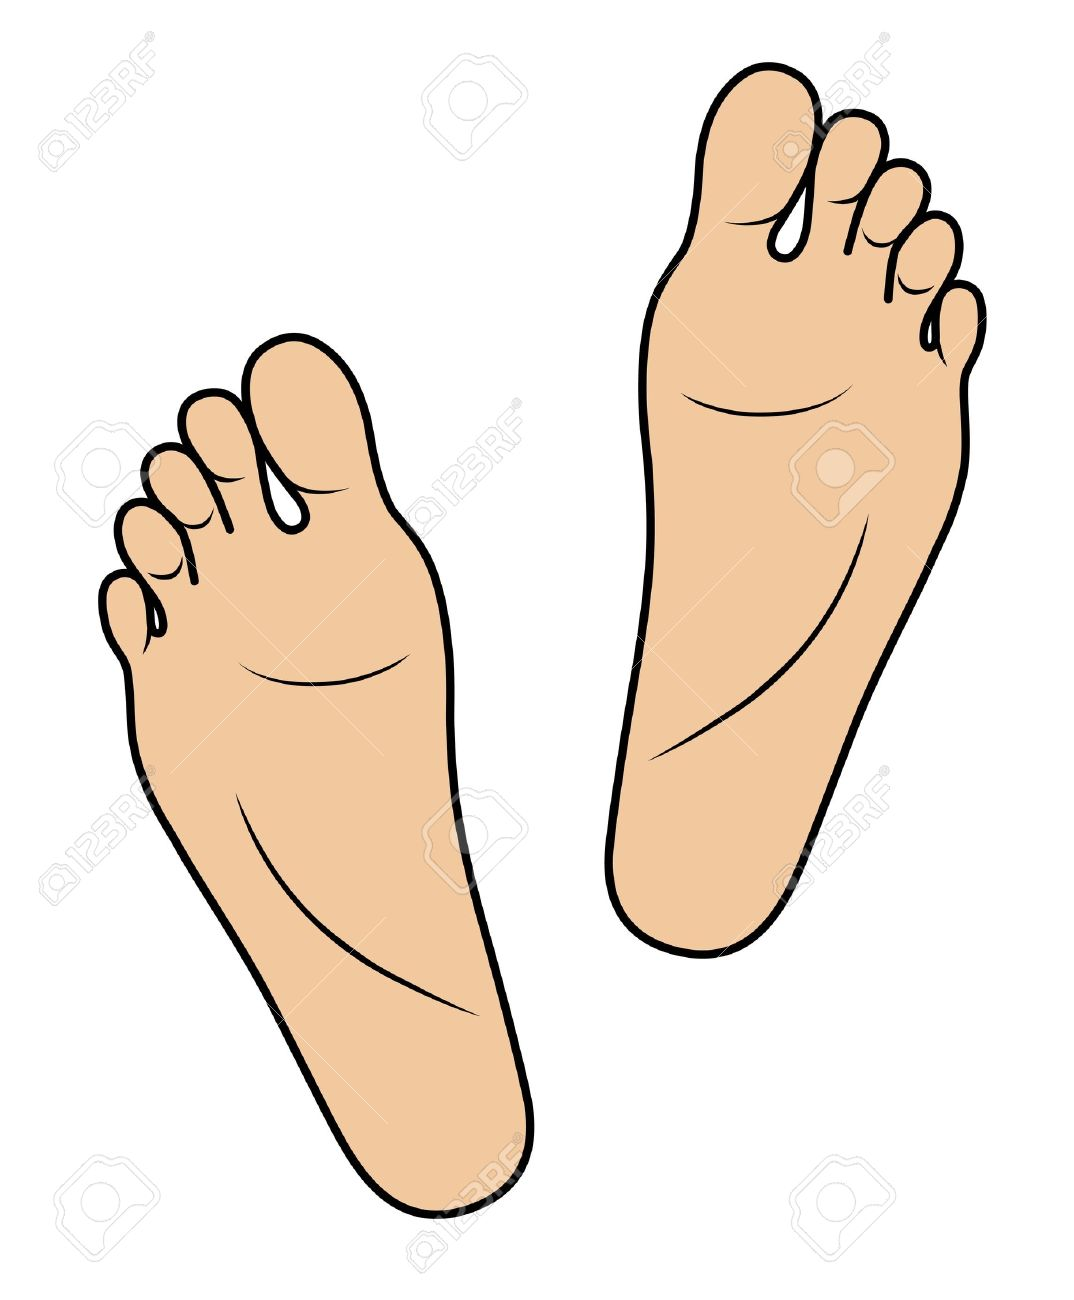 Feet clipart #5, Download drawings